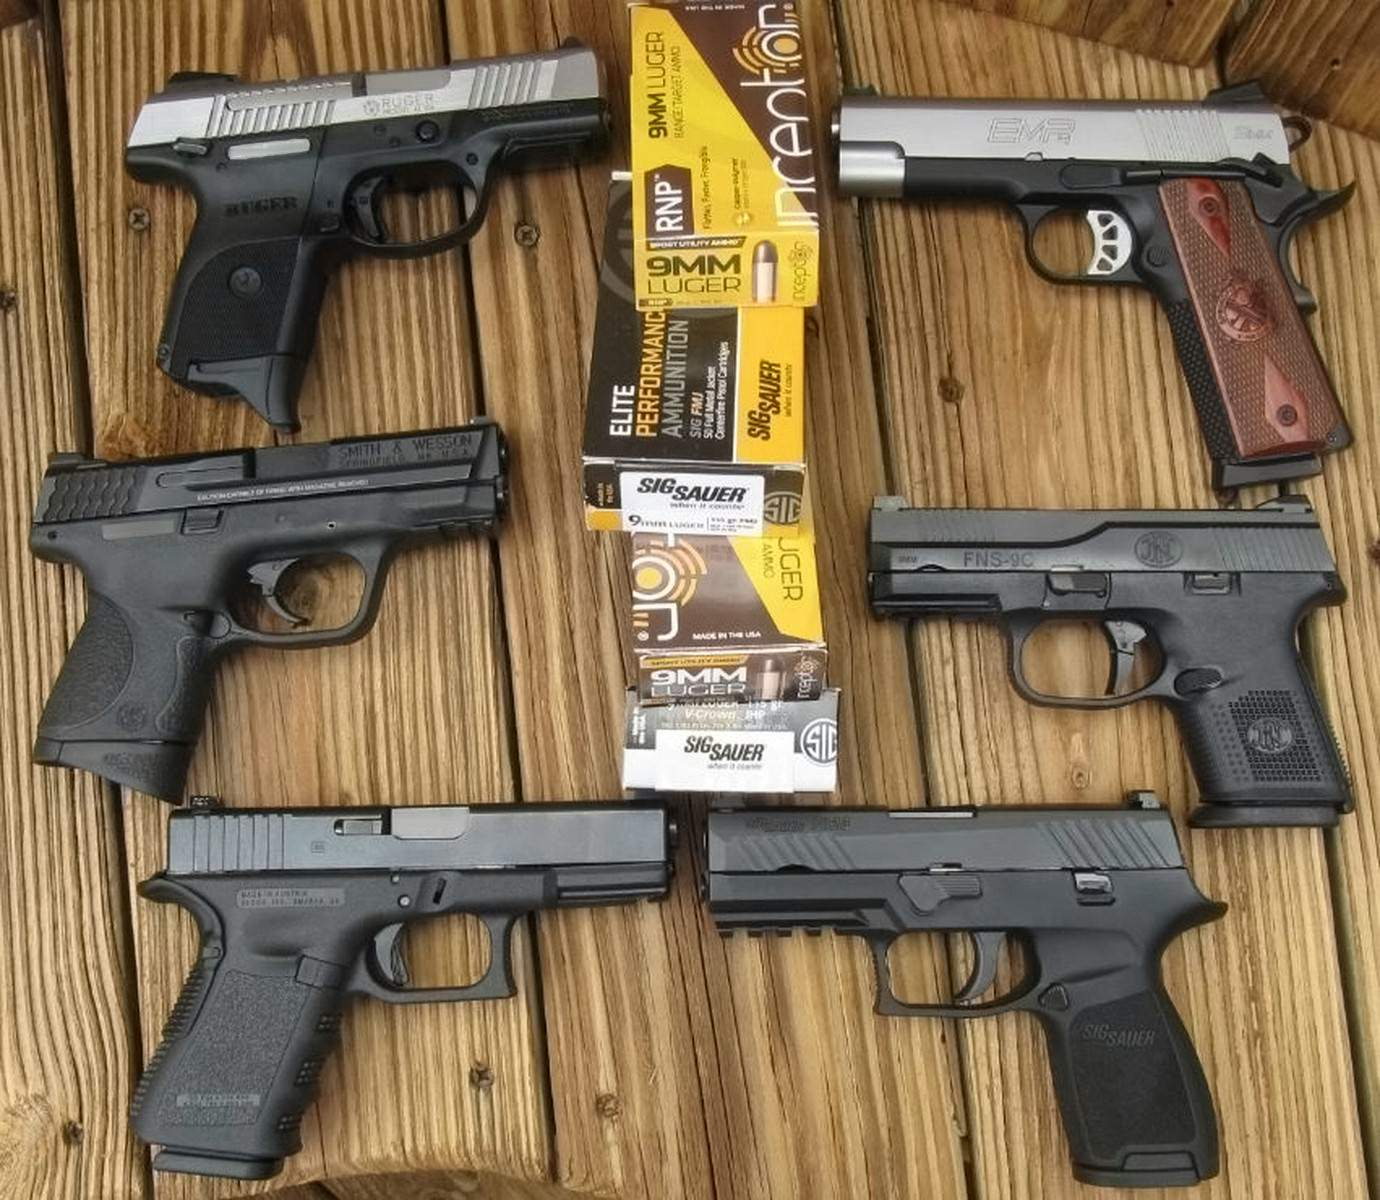 6 COMPACT 9mm Carry Pistols